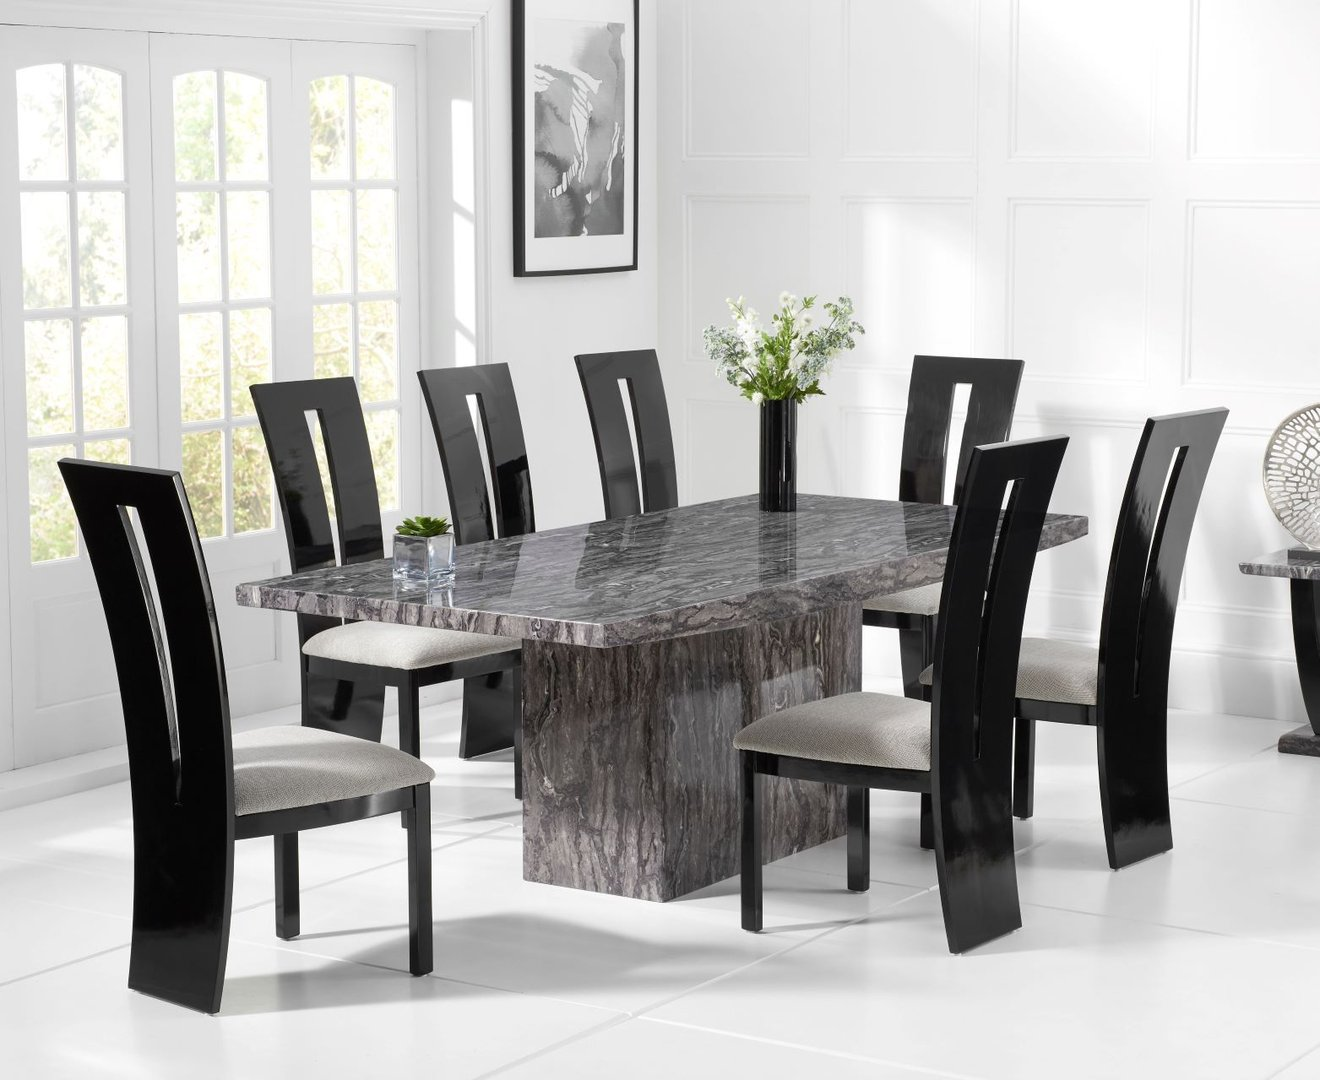 Large Grey Marble Dining Table 8 Black Gloss Chairs Homegenies